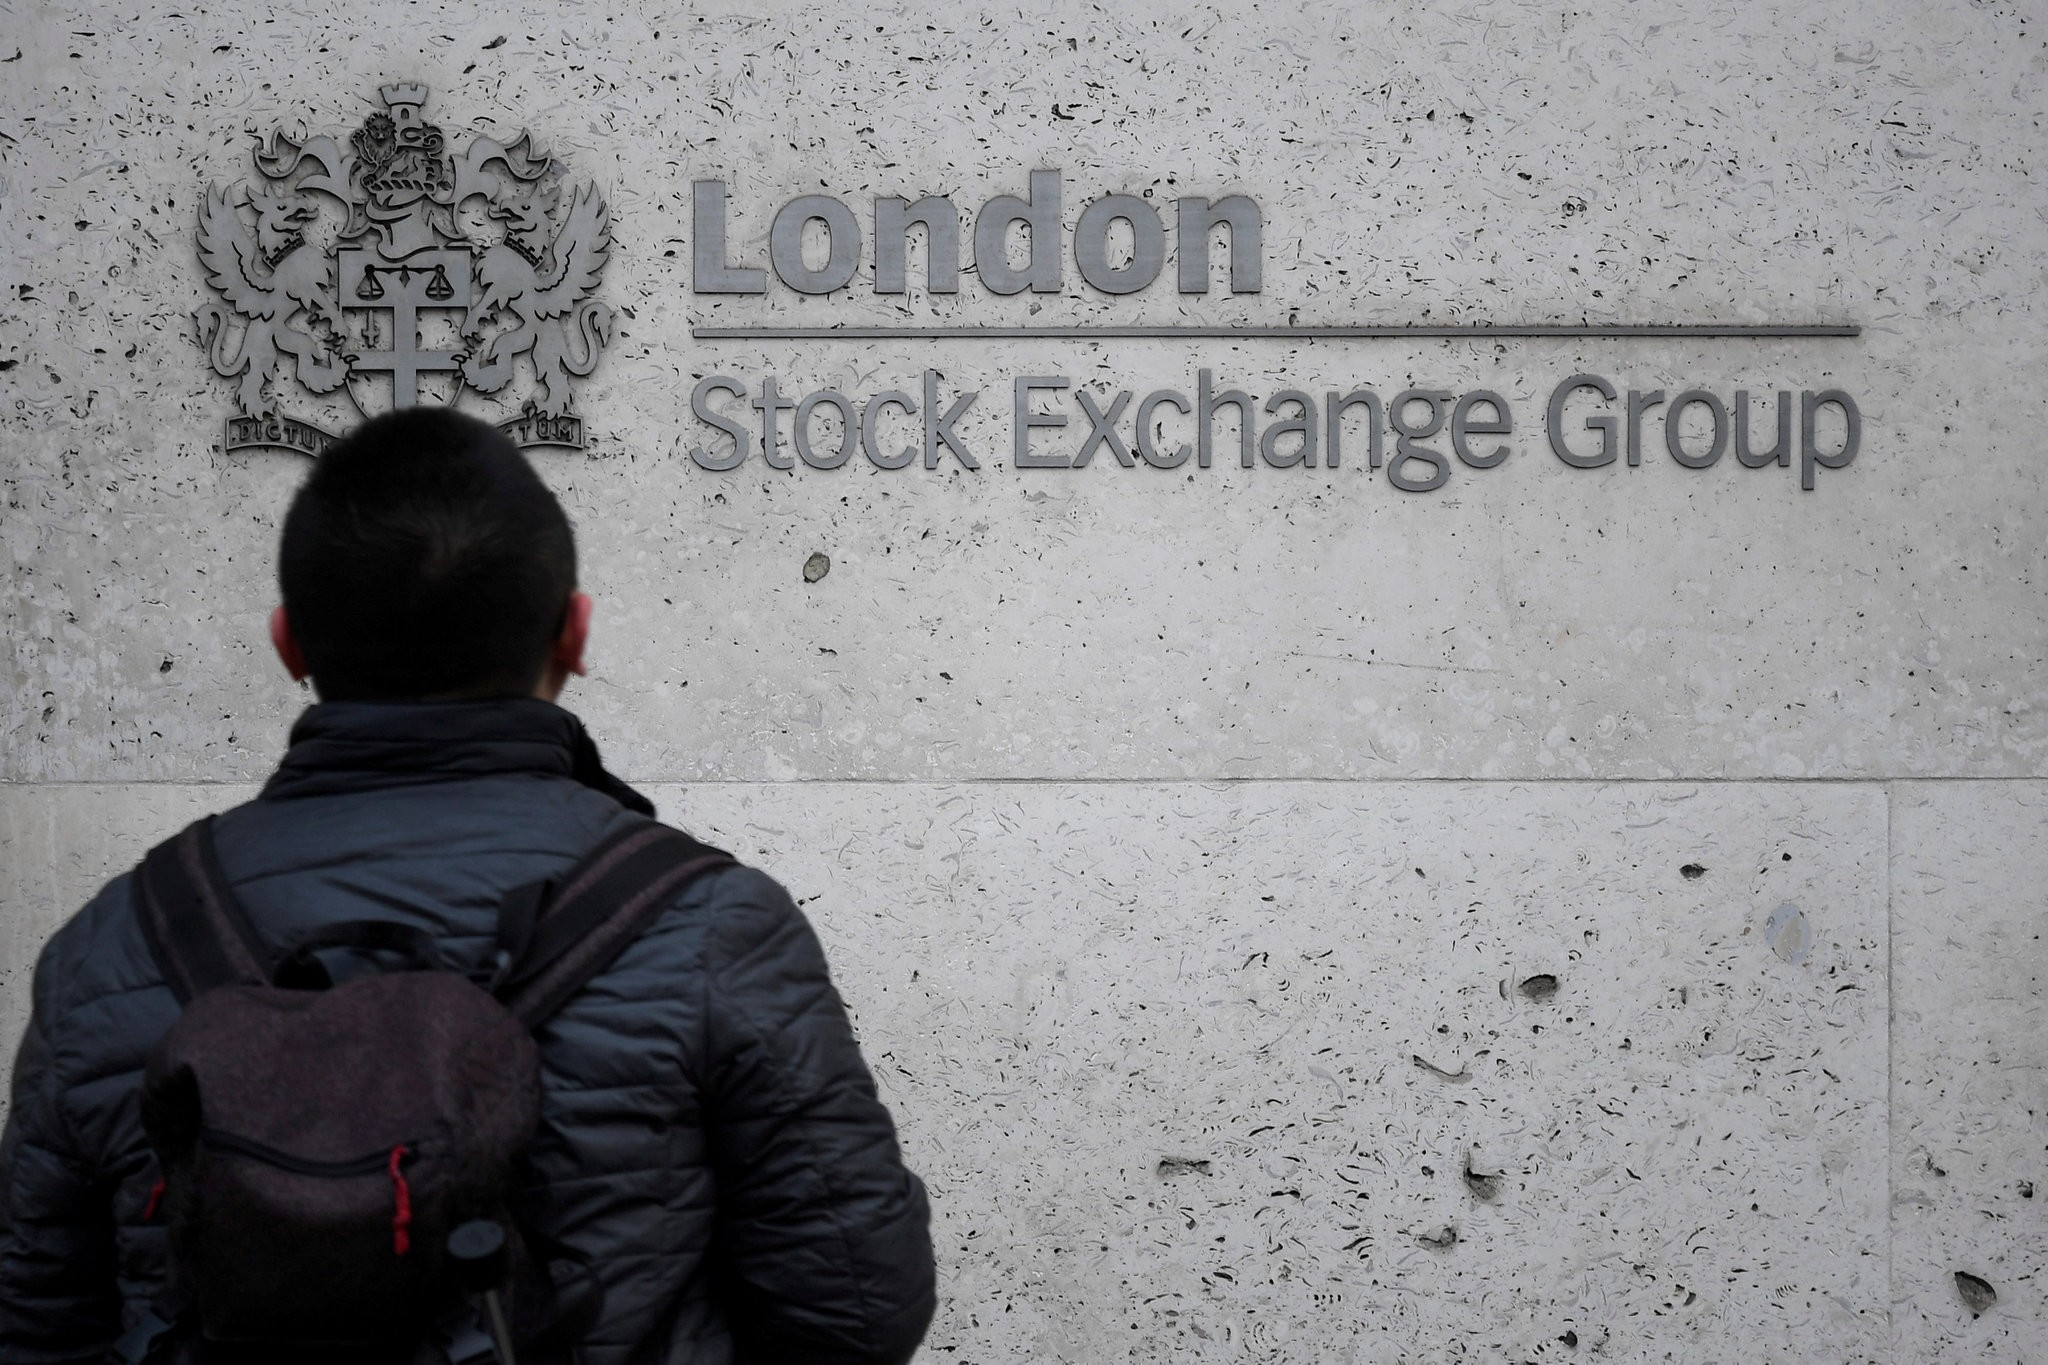 People walk past the London Stock Exchange Group offices in the City of London, Britain, December 29, 2017. (REUTERS Photo)